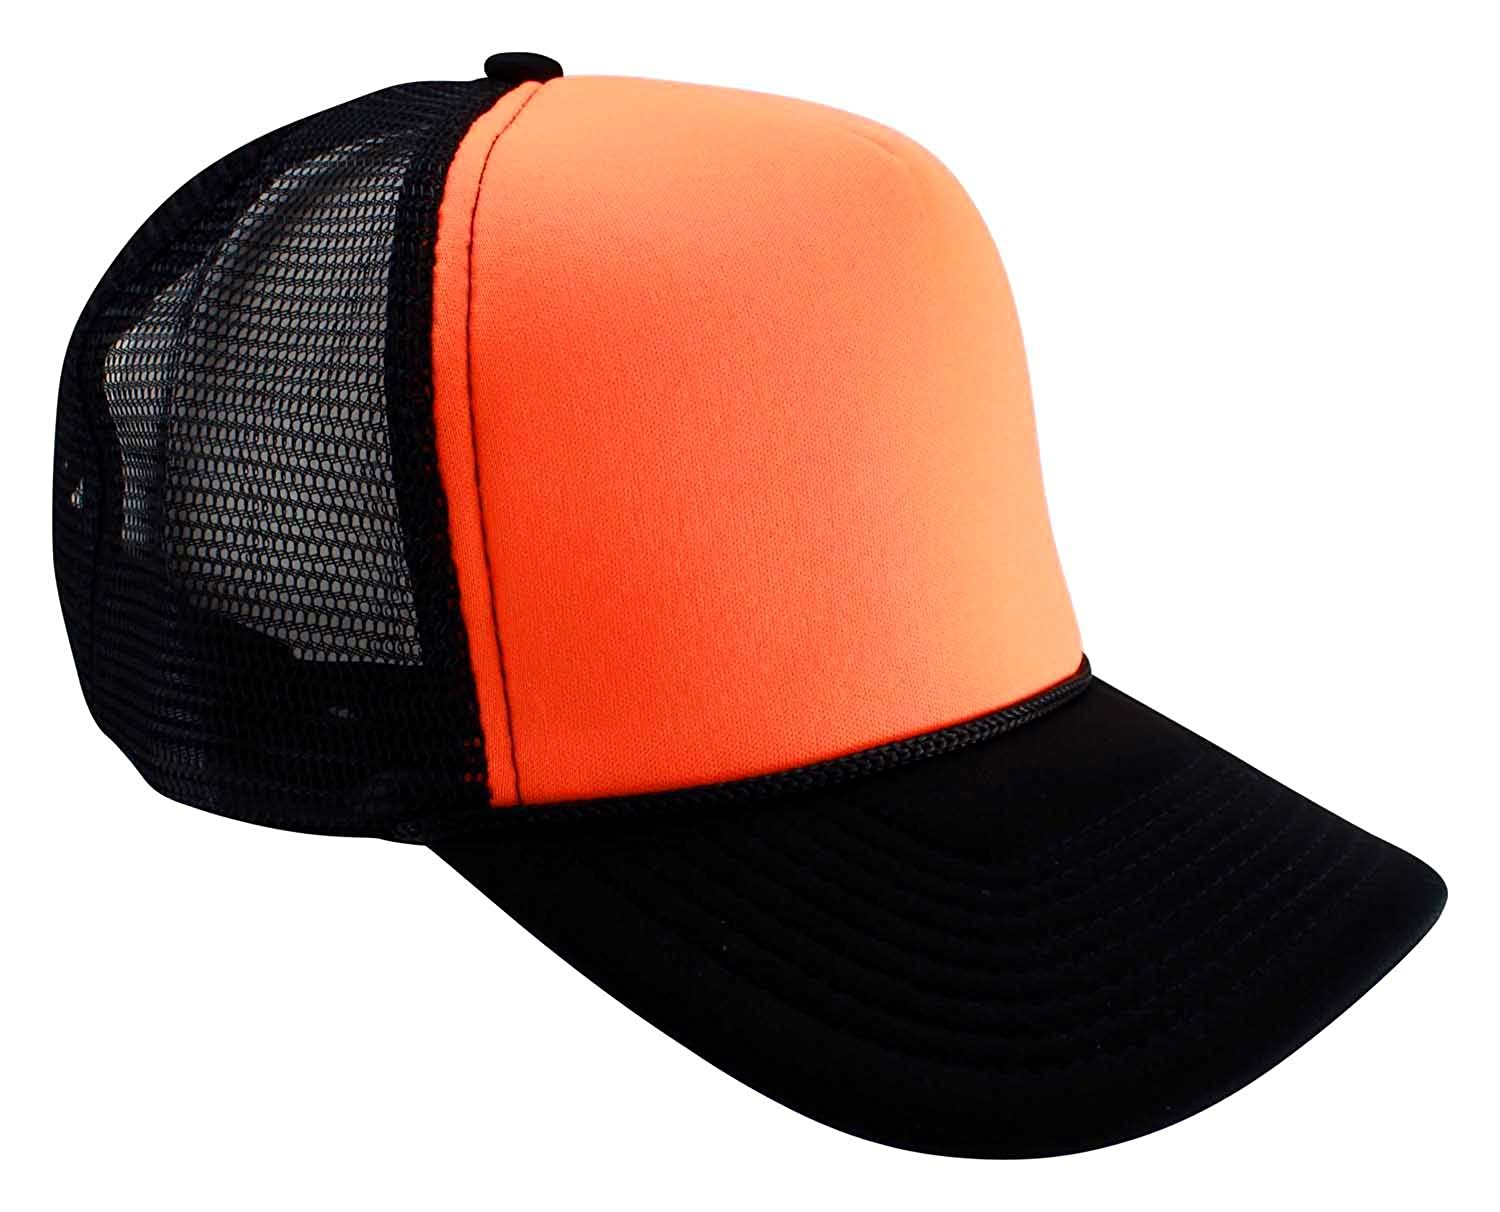 cfe8567e6d6 Get Quotations · Enimay Neon Colored Black Light Trucker Style Foam Hats  Pool Party Rave Summer